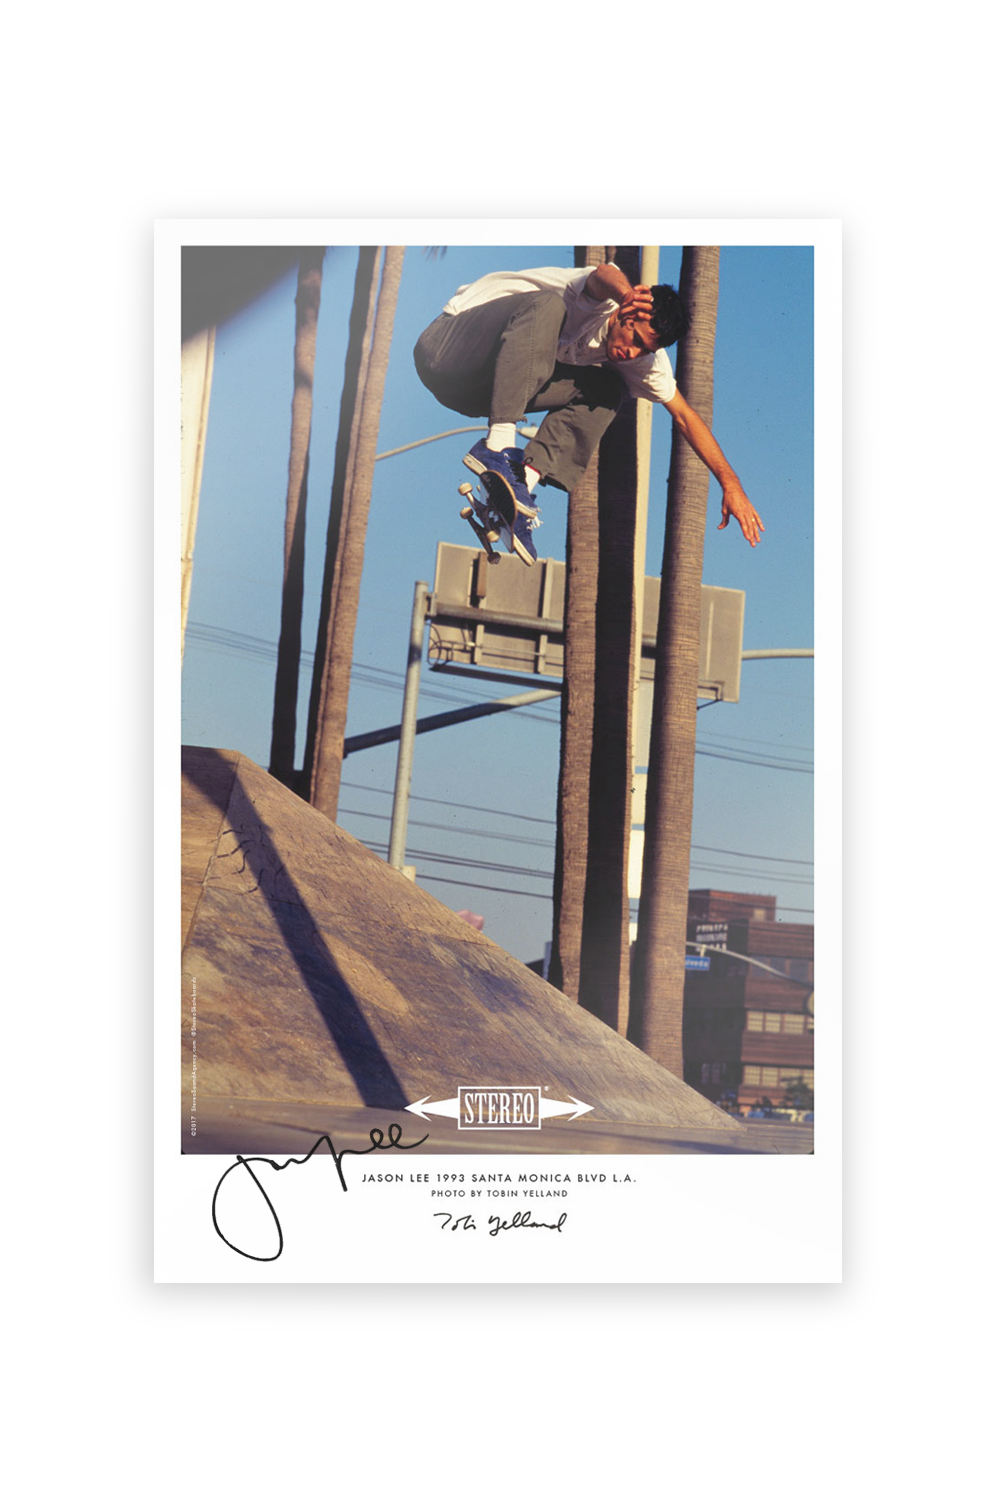 Jason Lee Signed 11x17 Poster